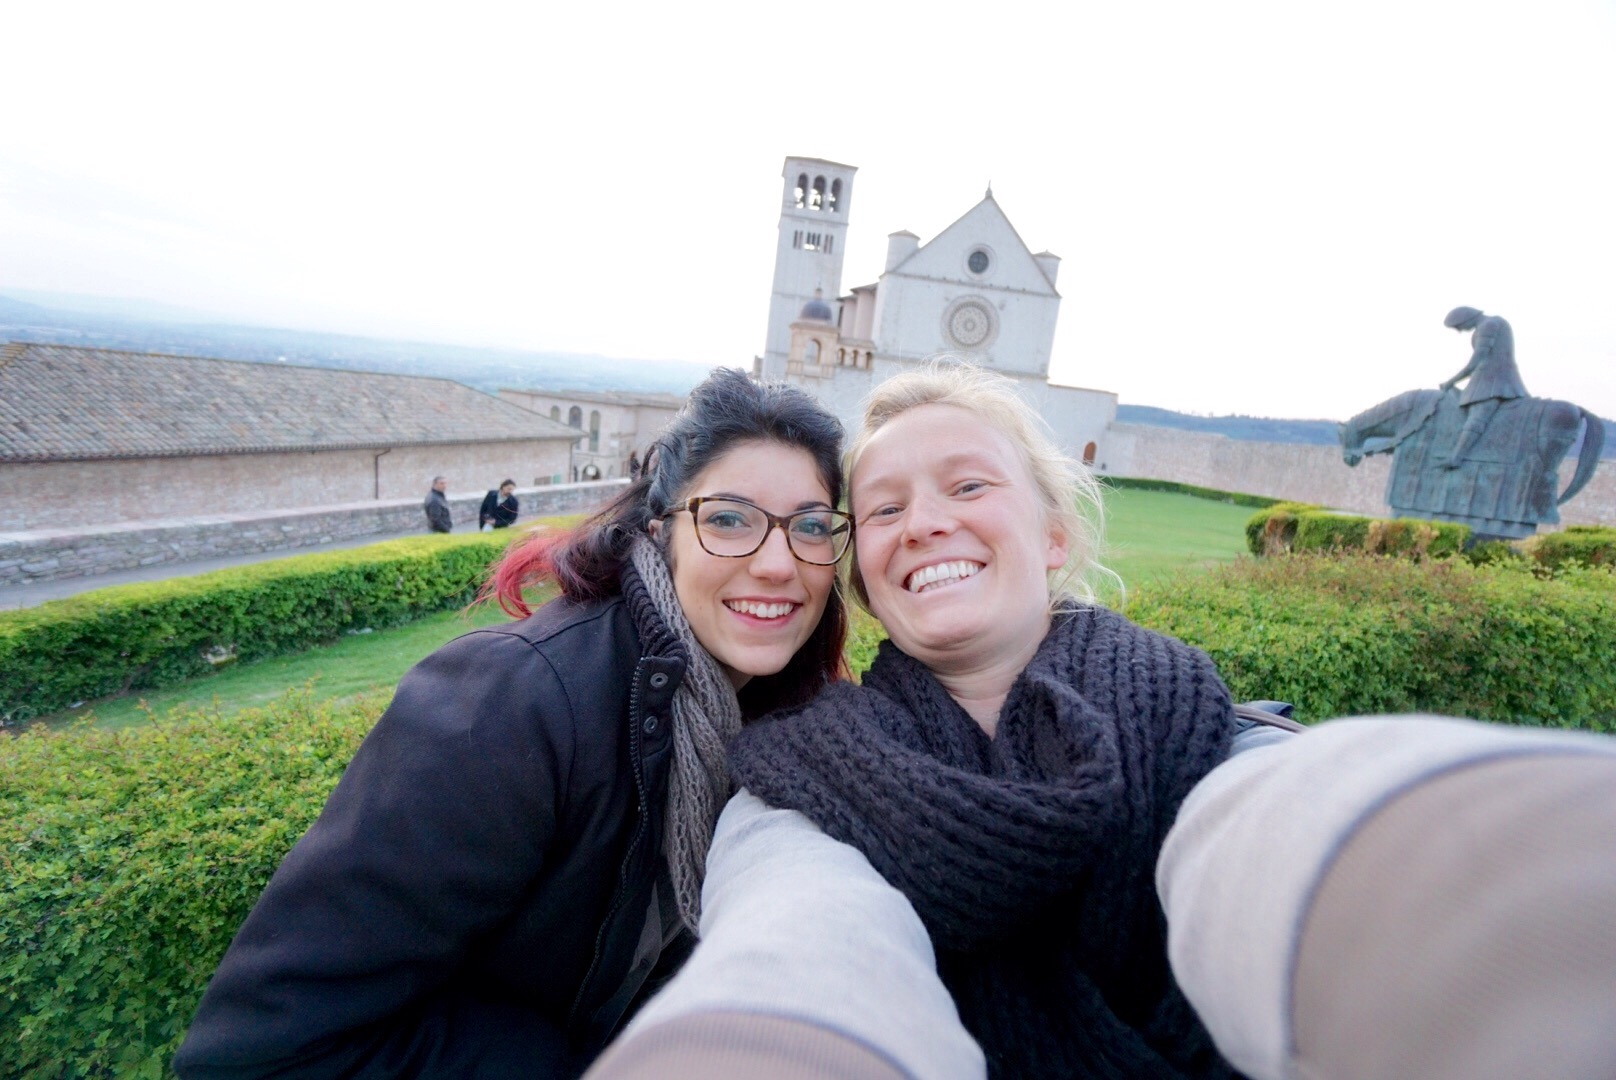 a self portrait of Angelica and Jess in Assisi in front of the basillica de san fernando